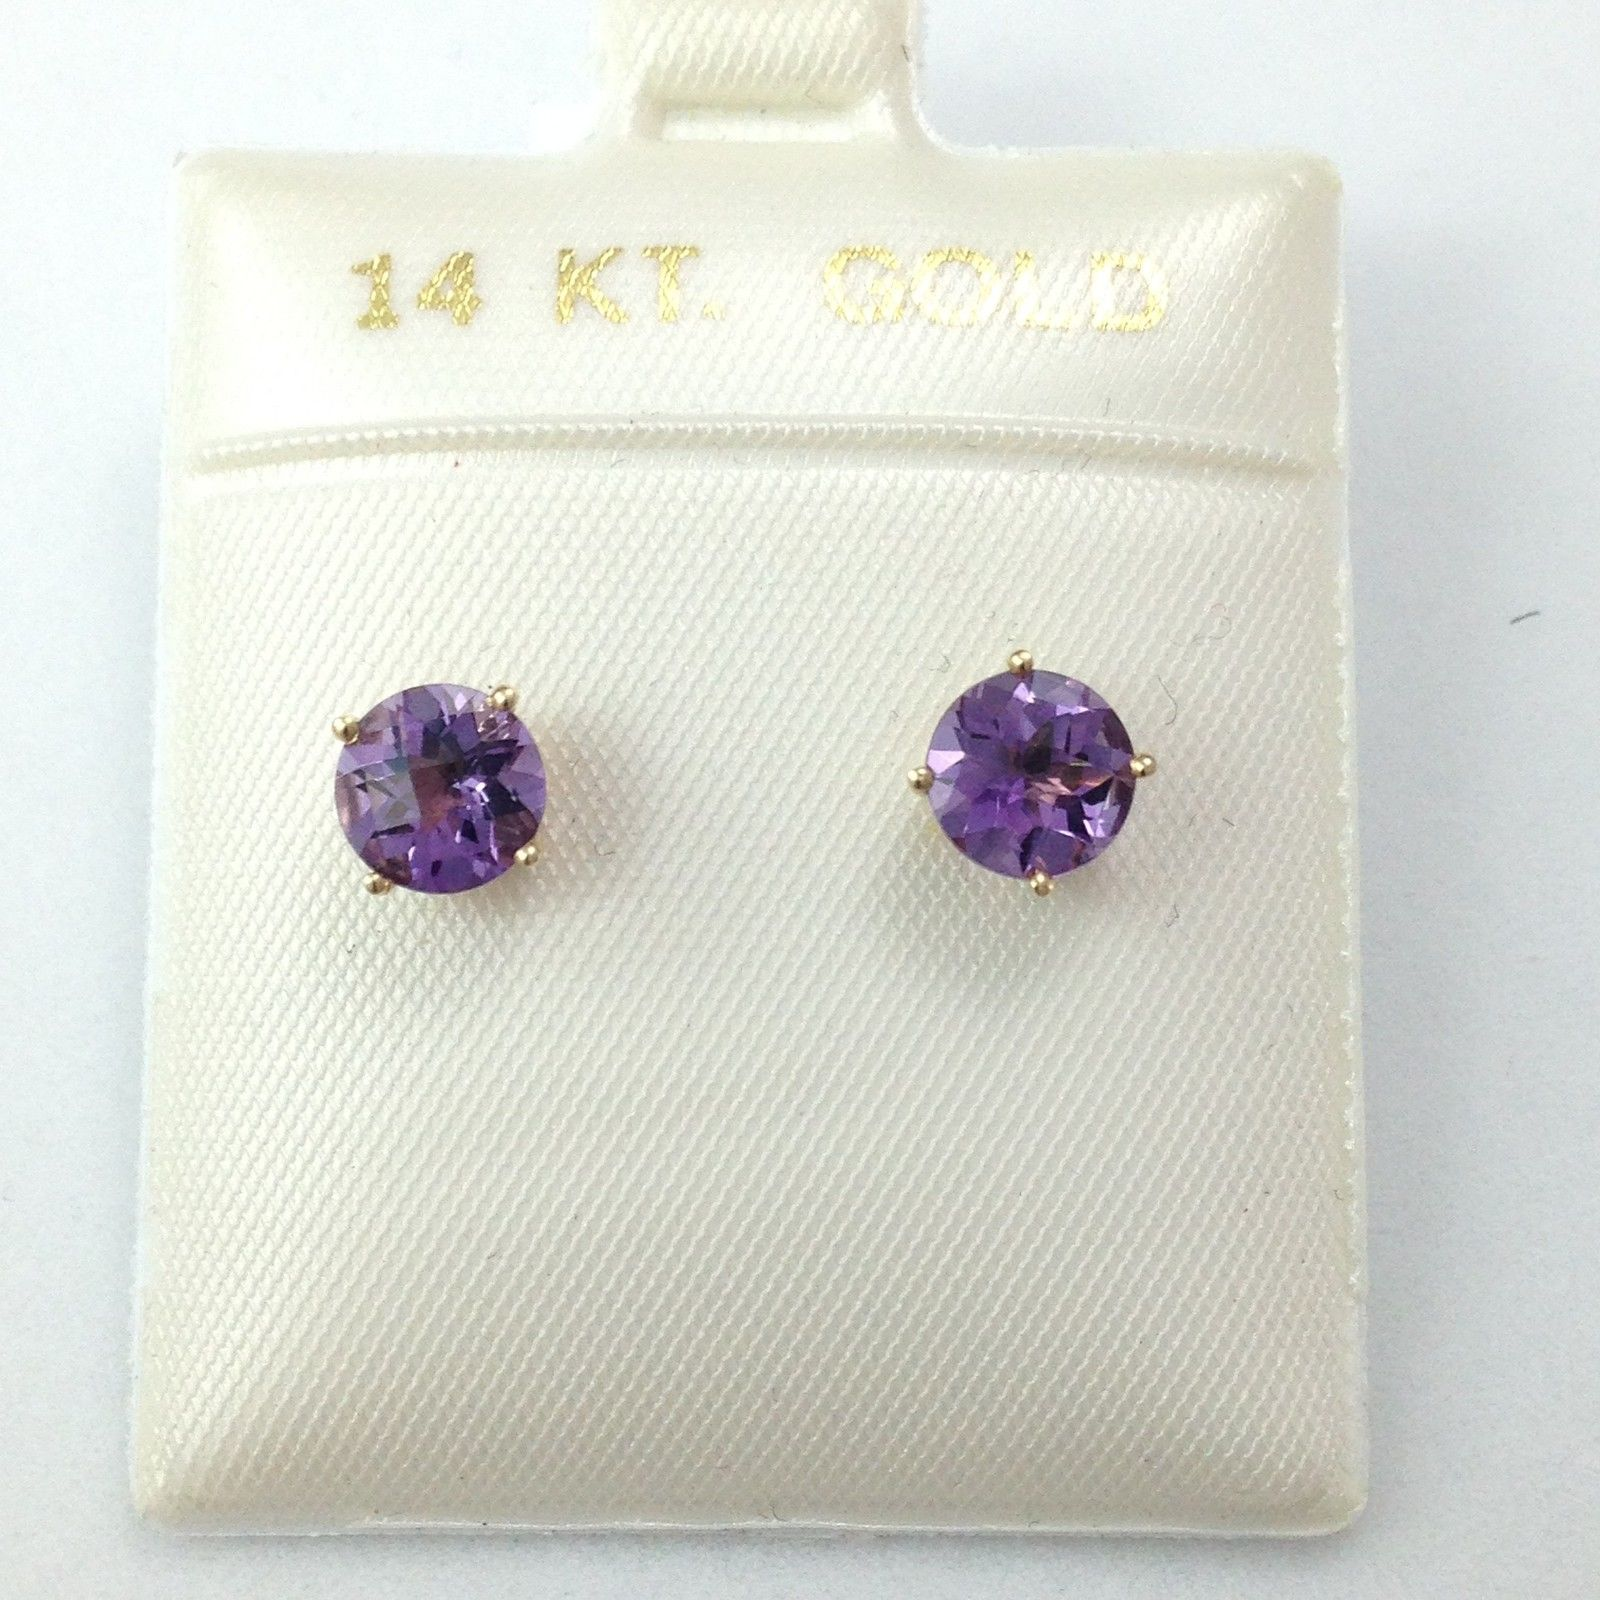 Genuine Amethyst Earrings 6mm 1.5 cttw 14K Yellow Gold NWT $390